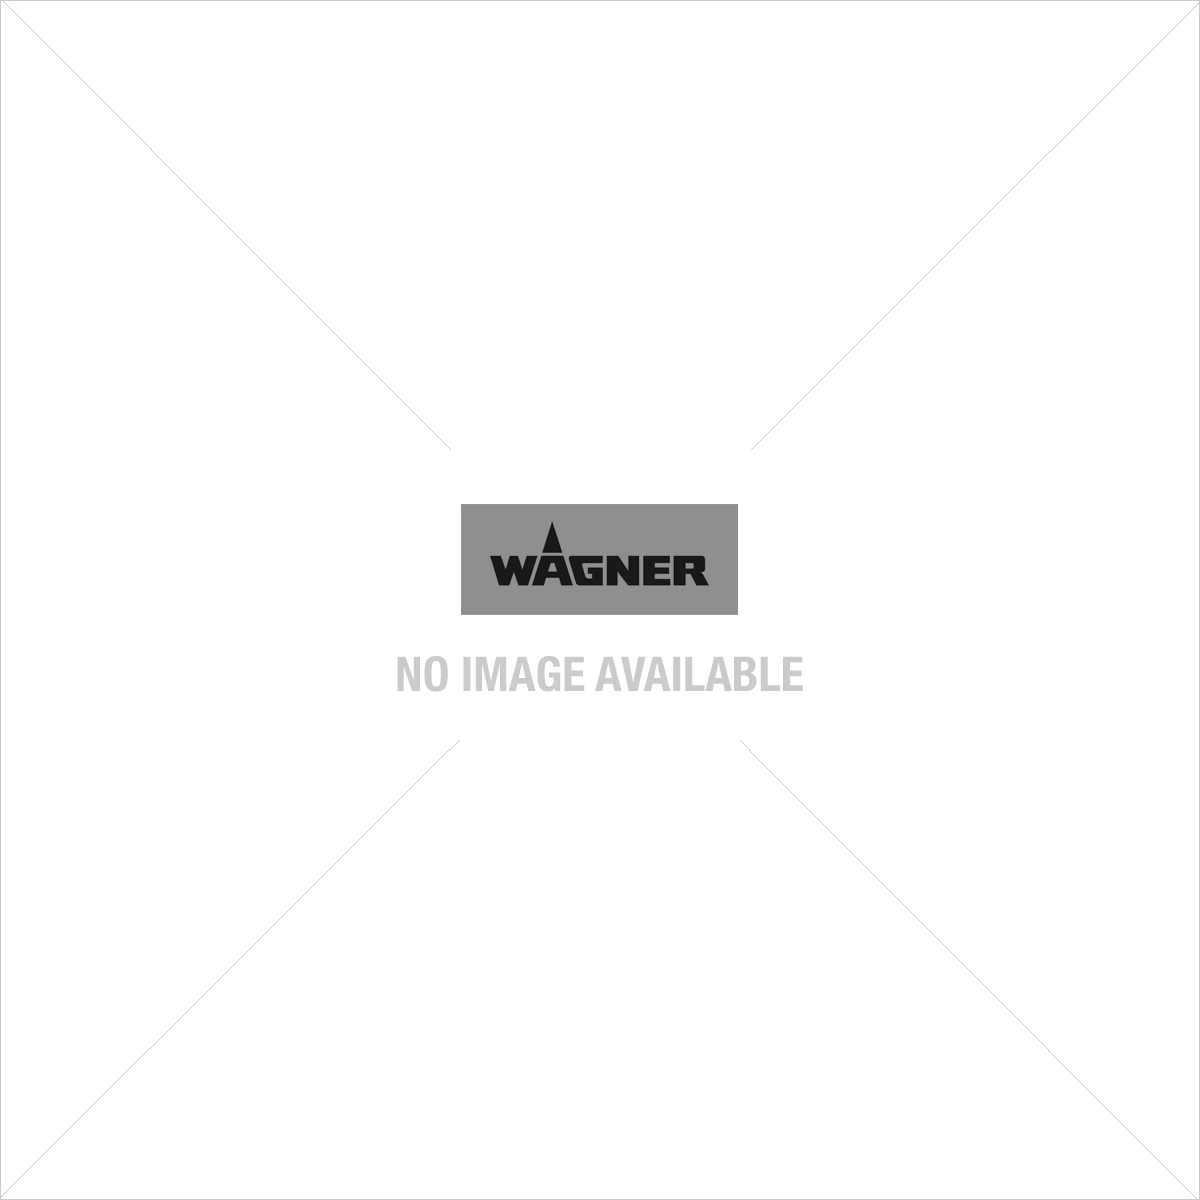 Wagner project pro 117 video